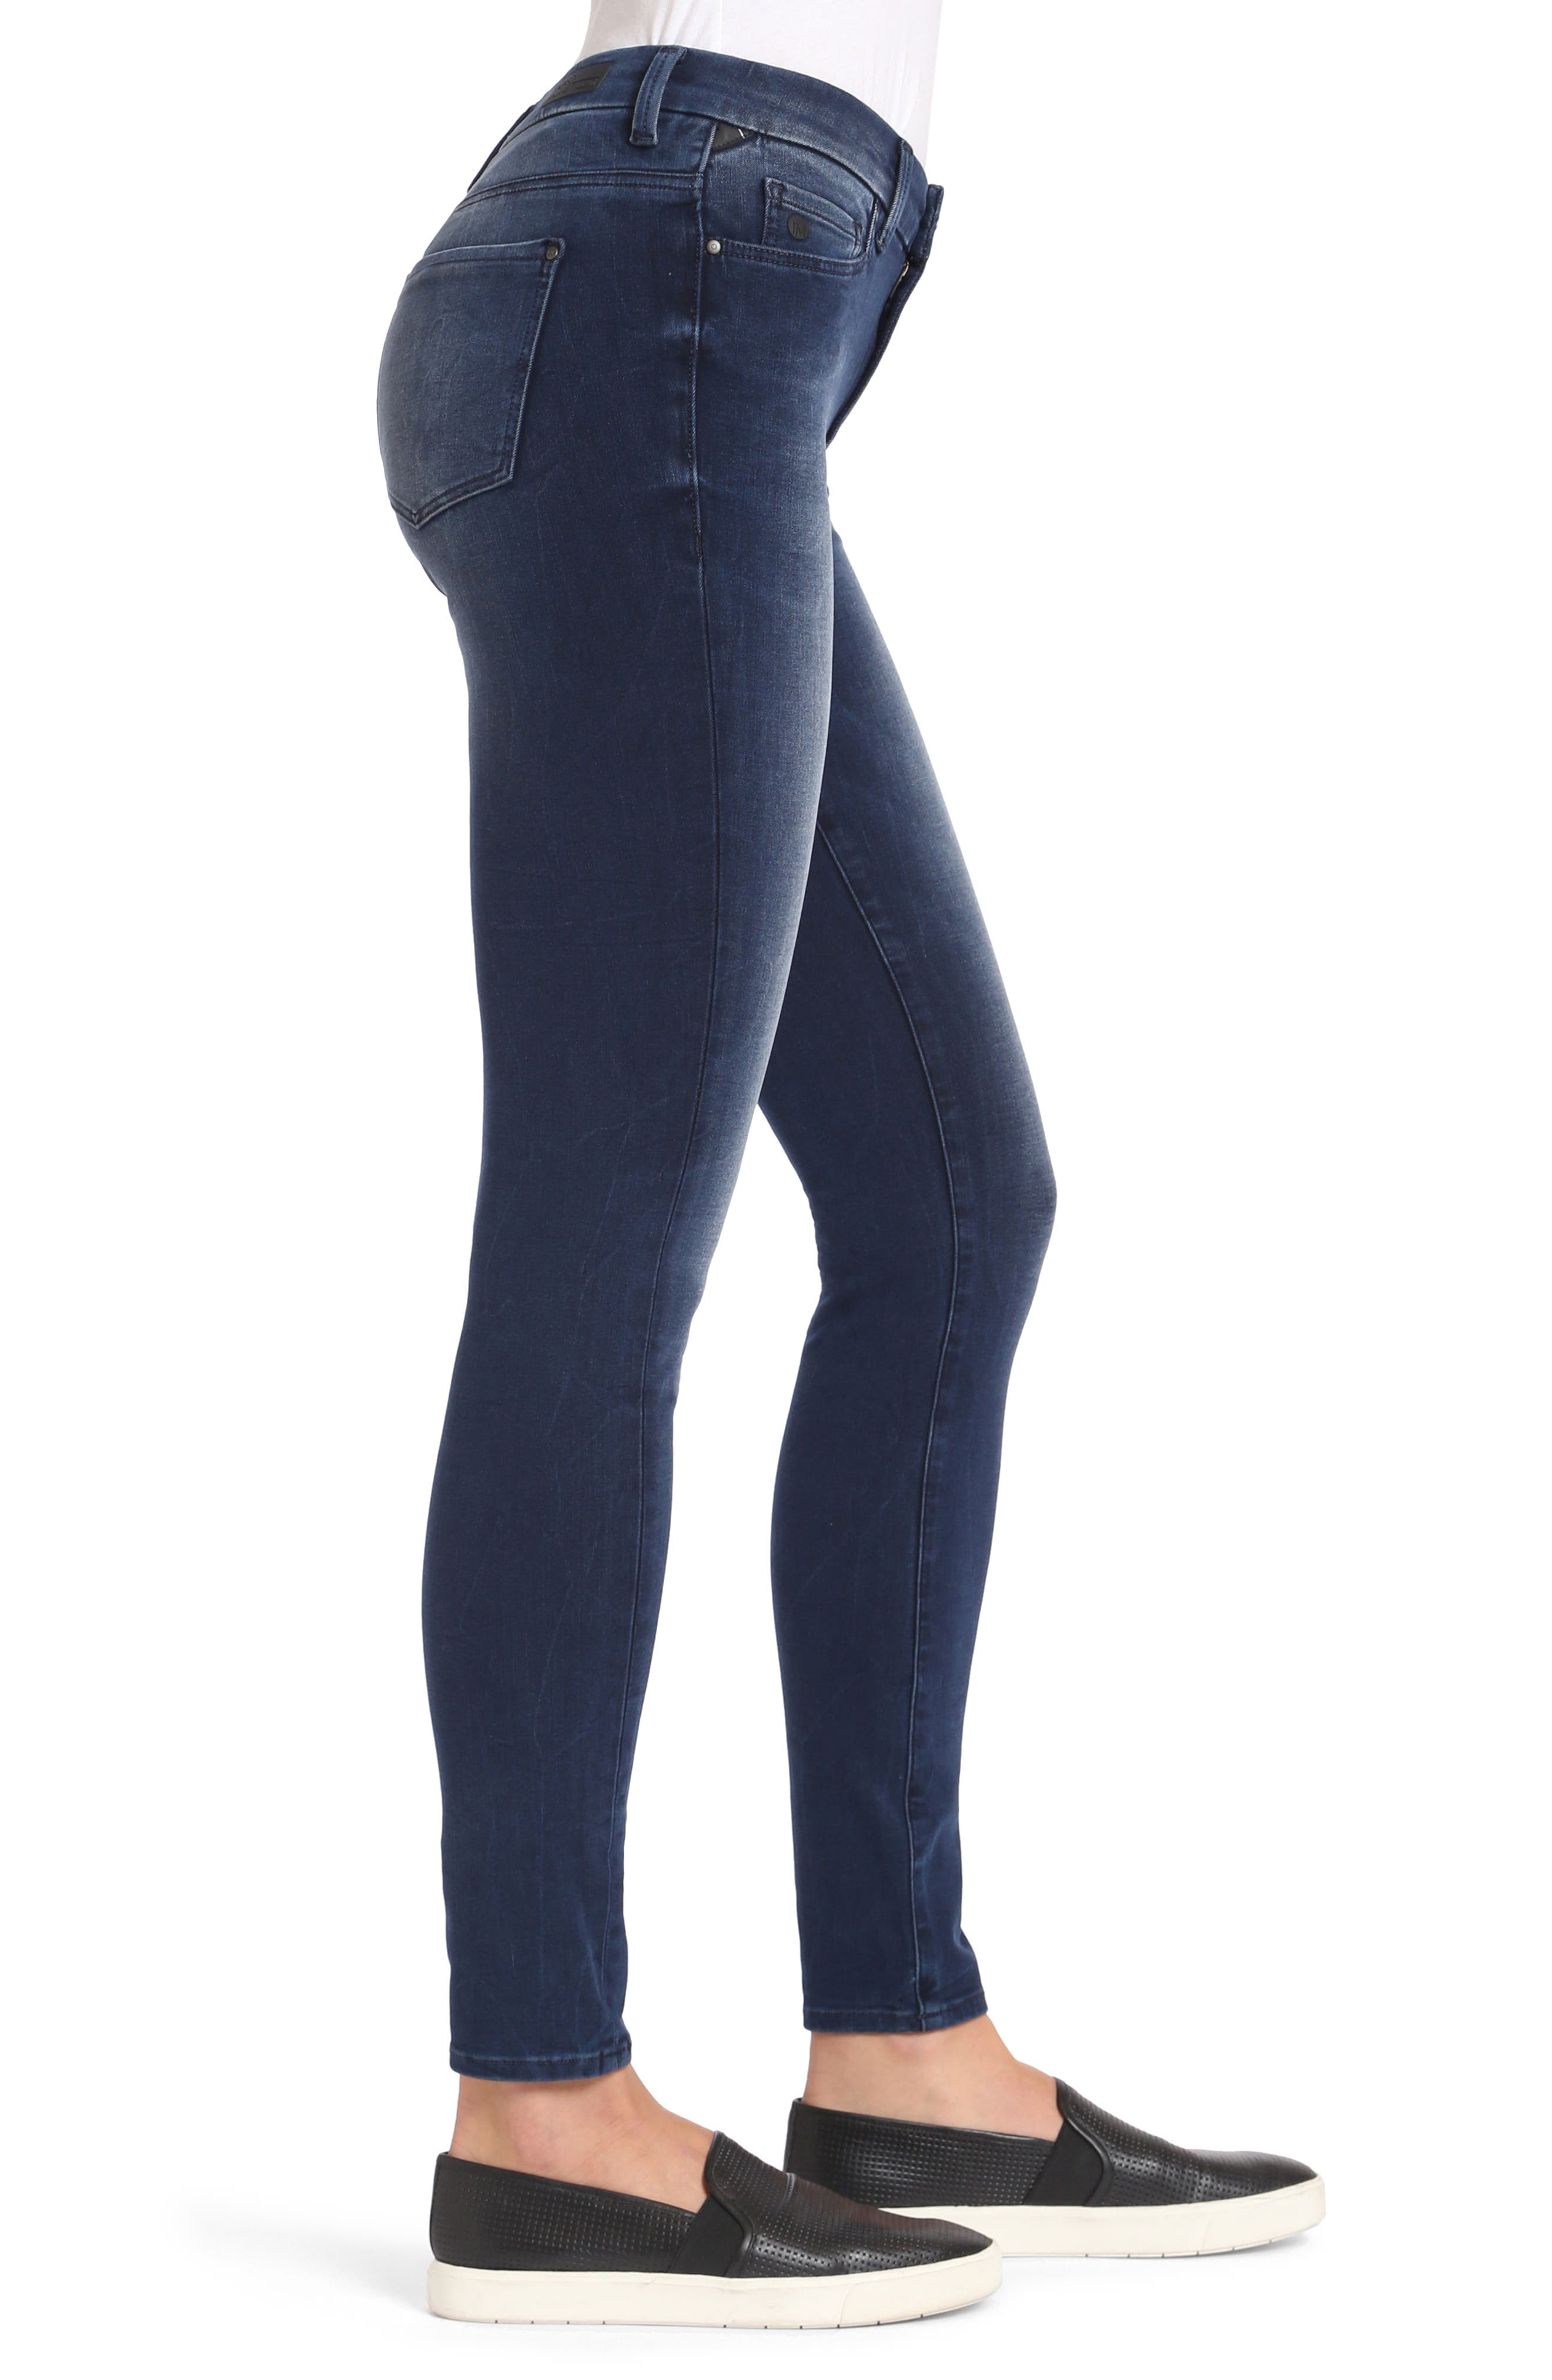 Alissa Stretch Slim High Rise Ankle Jeans,                             Alternate thumbnail 3, color,                             Ink Bi Stretch